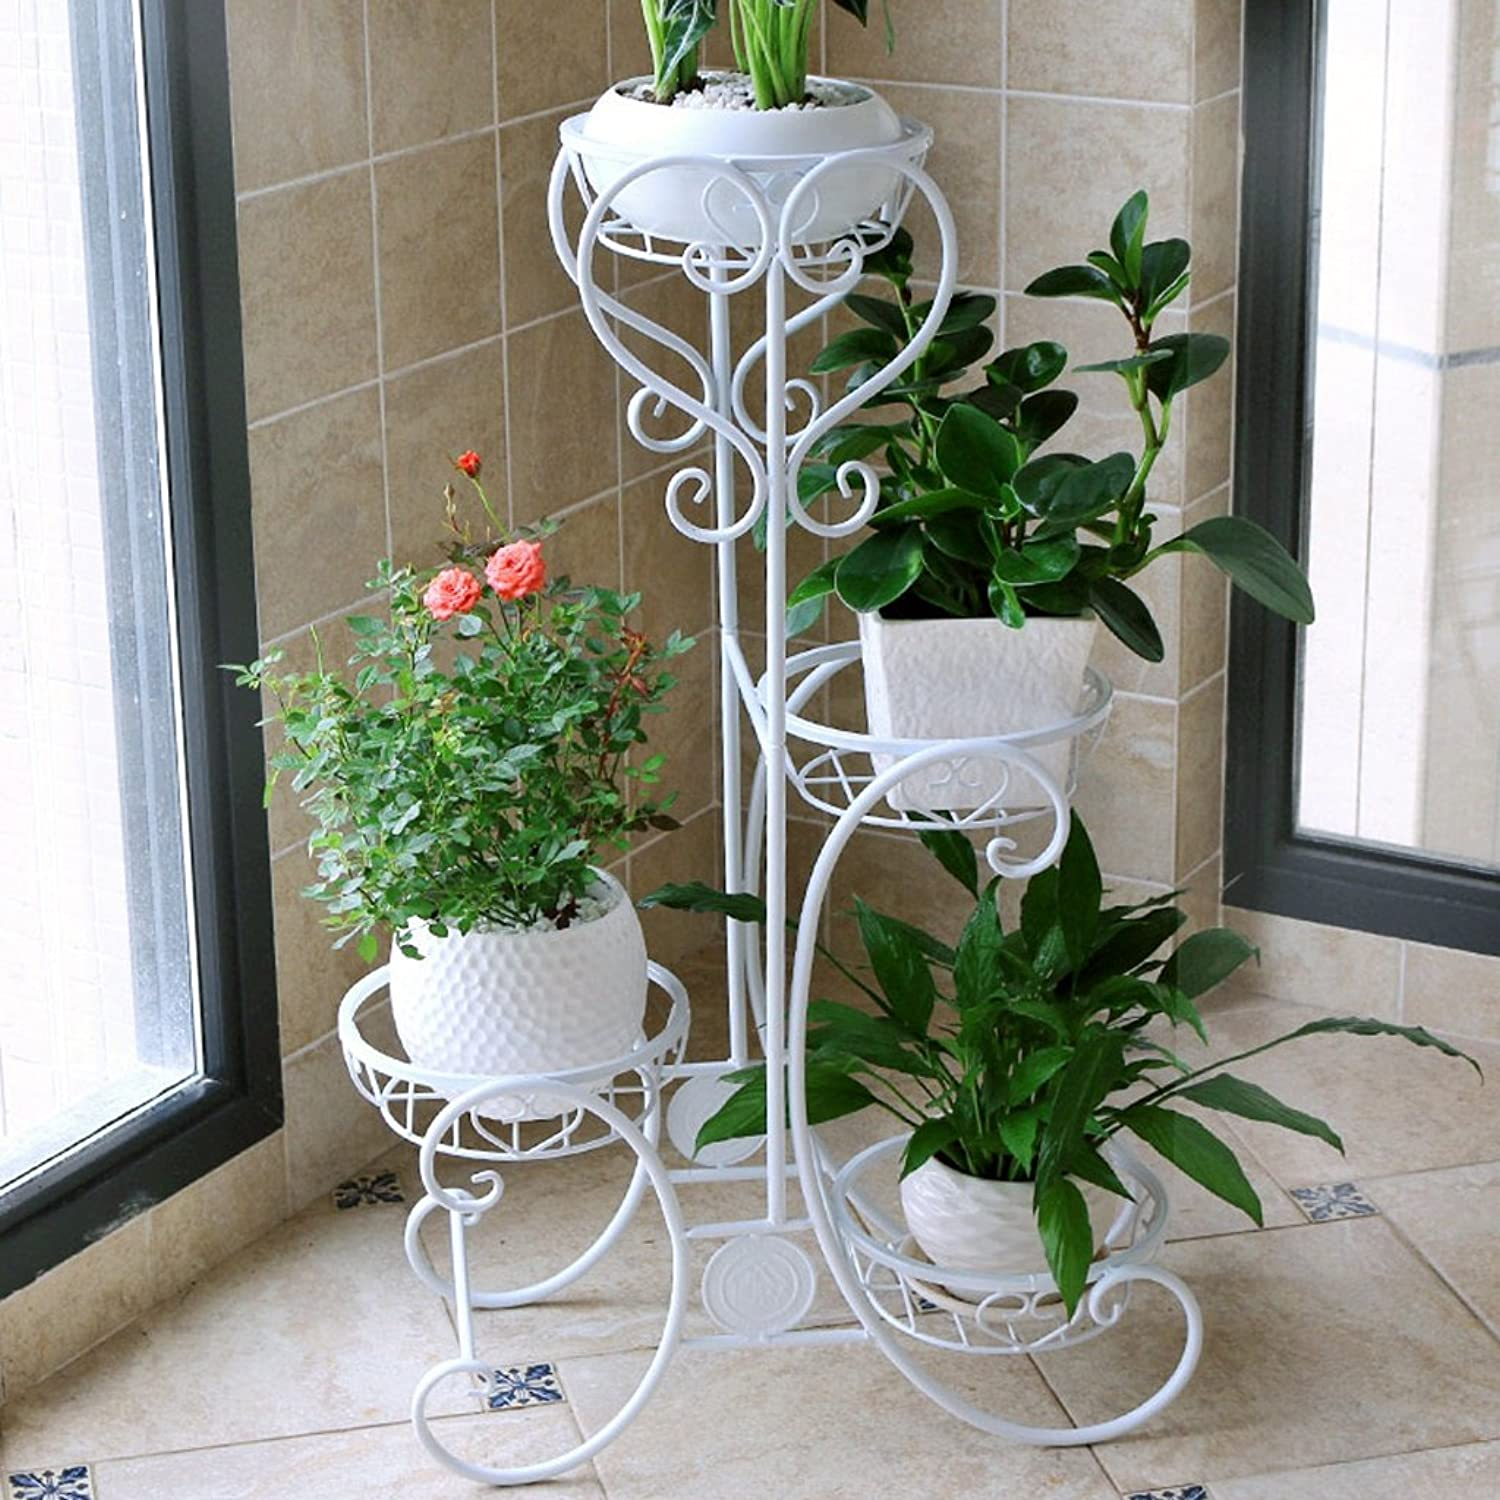 Flower Stand Shelf Multi Storey Metal Painting Flower Pot Frame Iron Indoor Balcony Living Room Plant Display Rack (color   White, Size   492482cm)